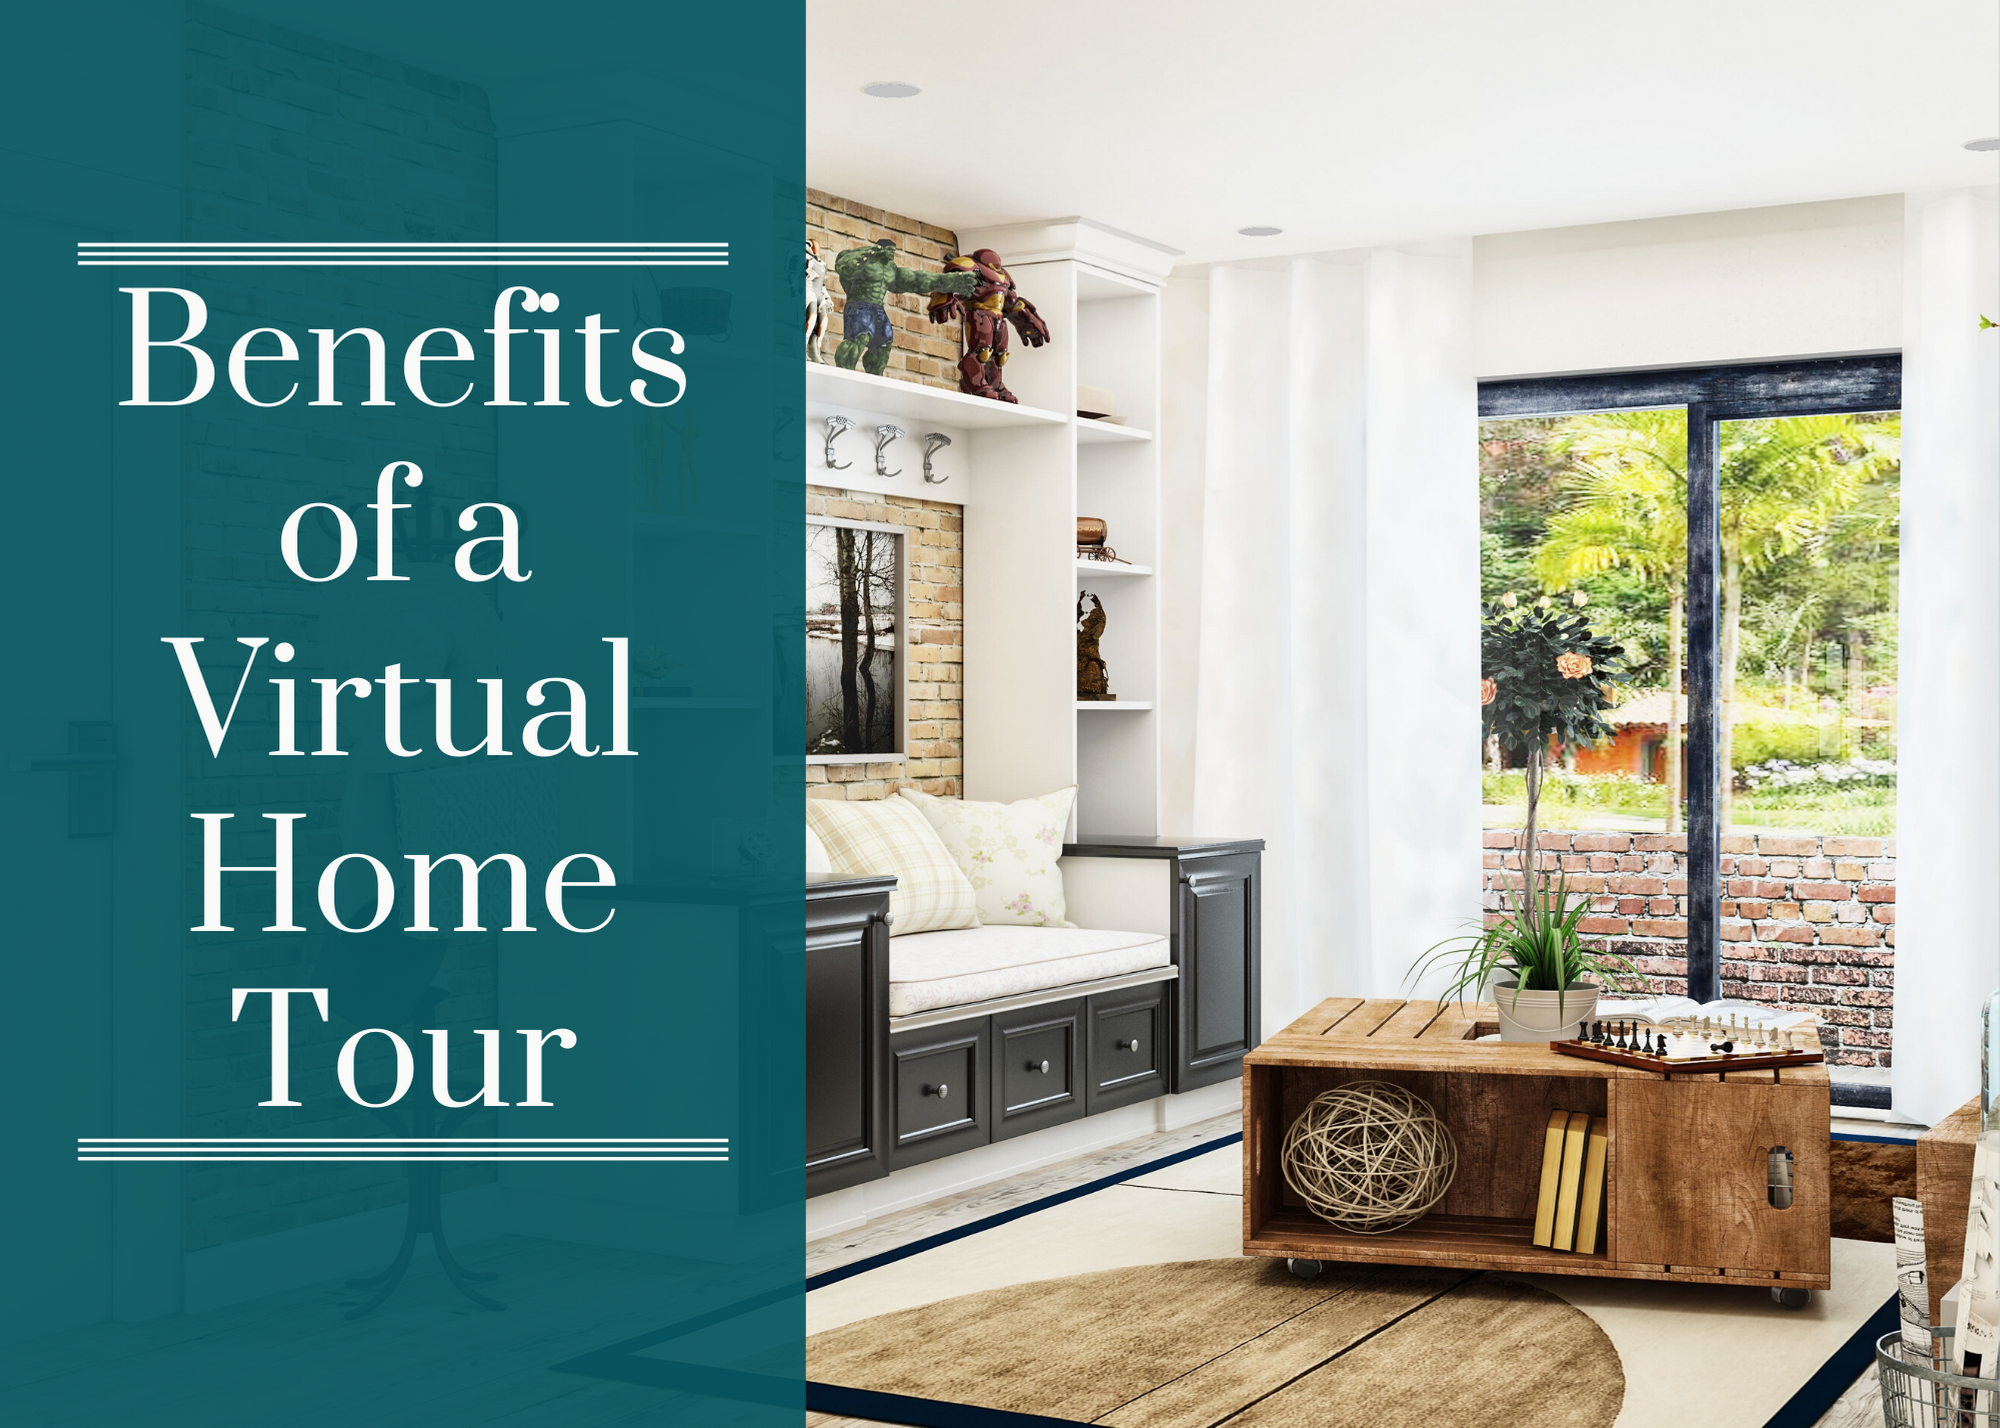 Benefits of a Virtual Home Tour